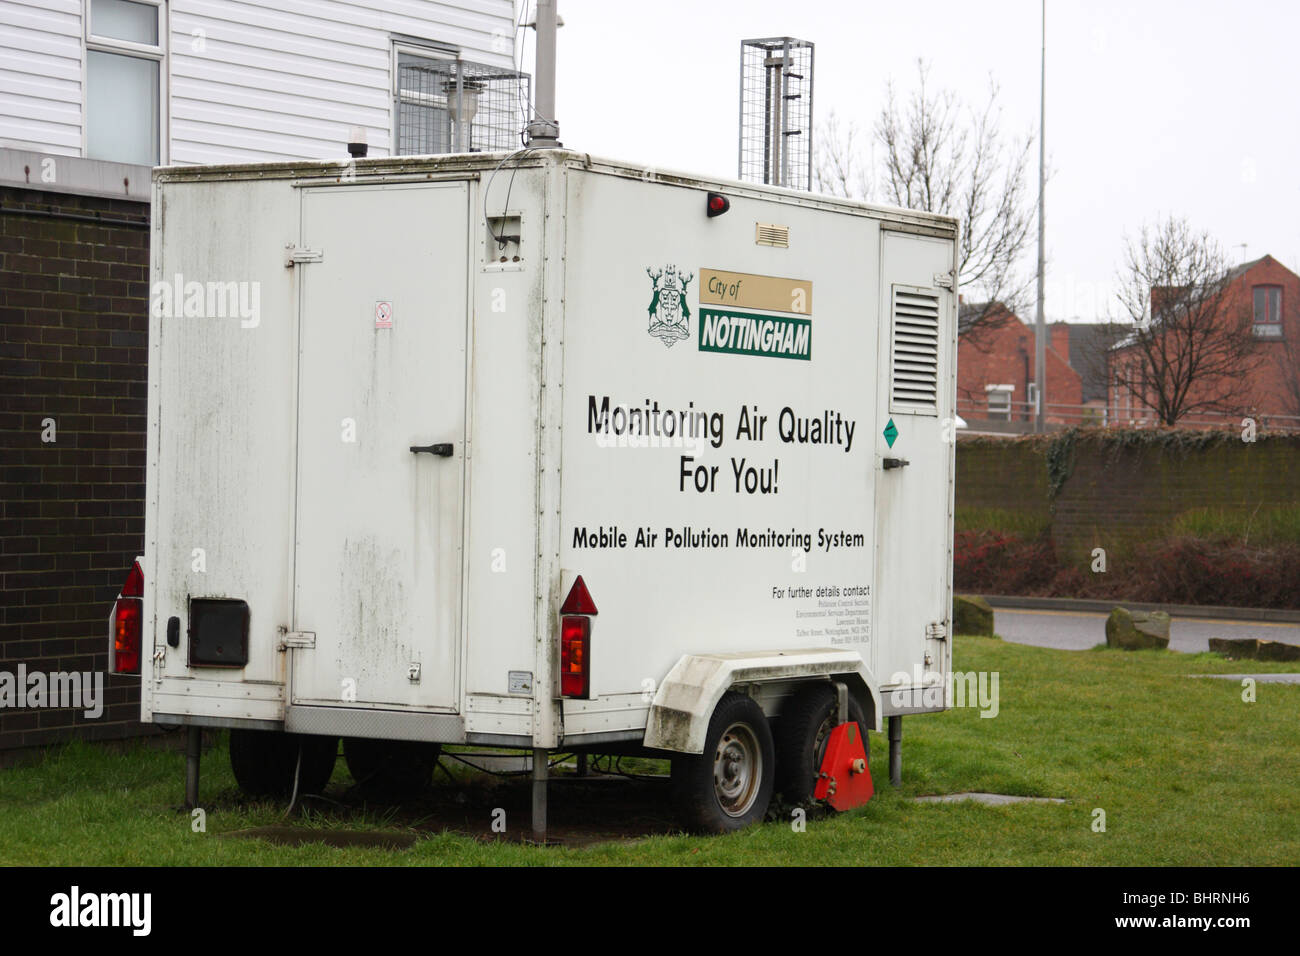 A mobile air pollution monitoring system in a U.K. city. - Stock Image